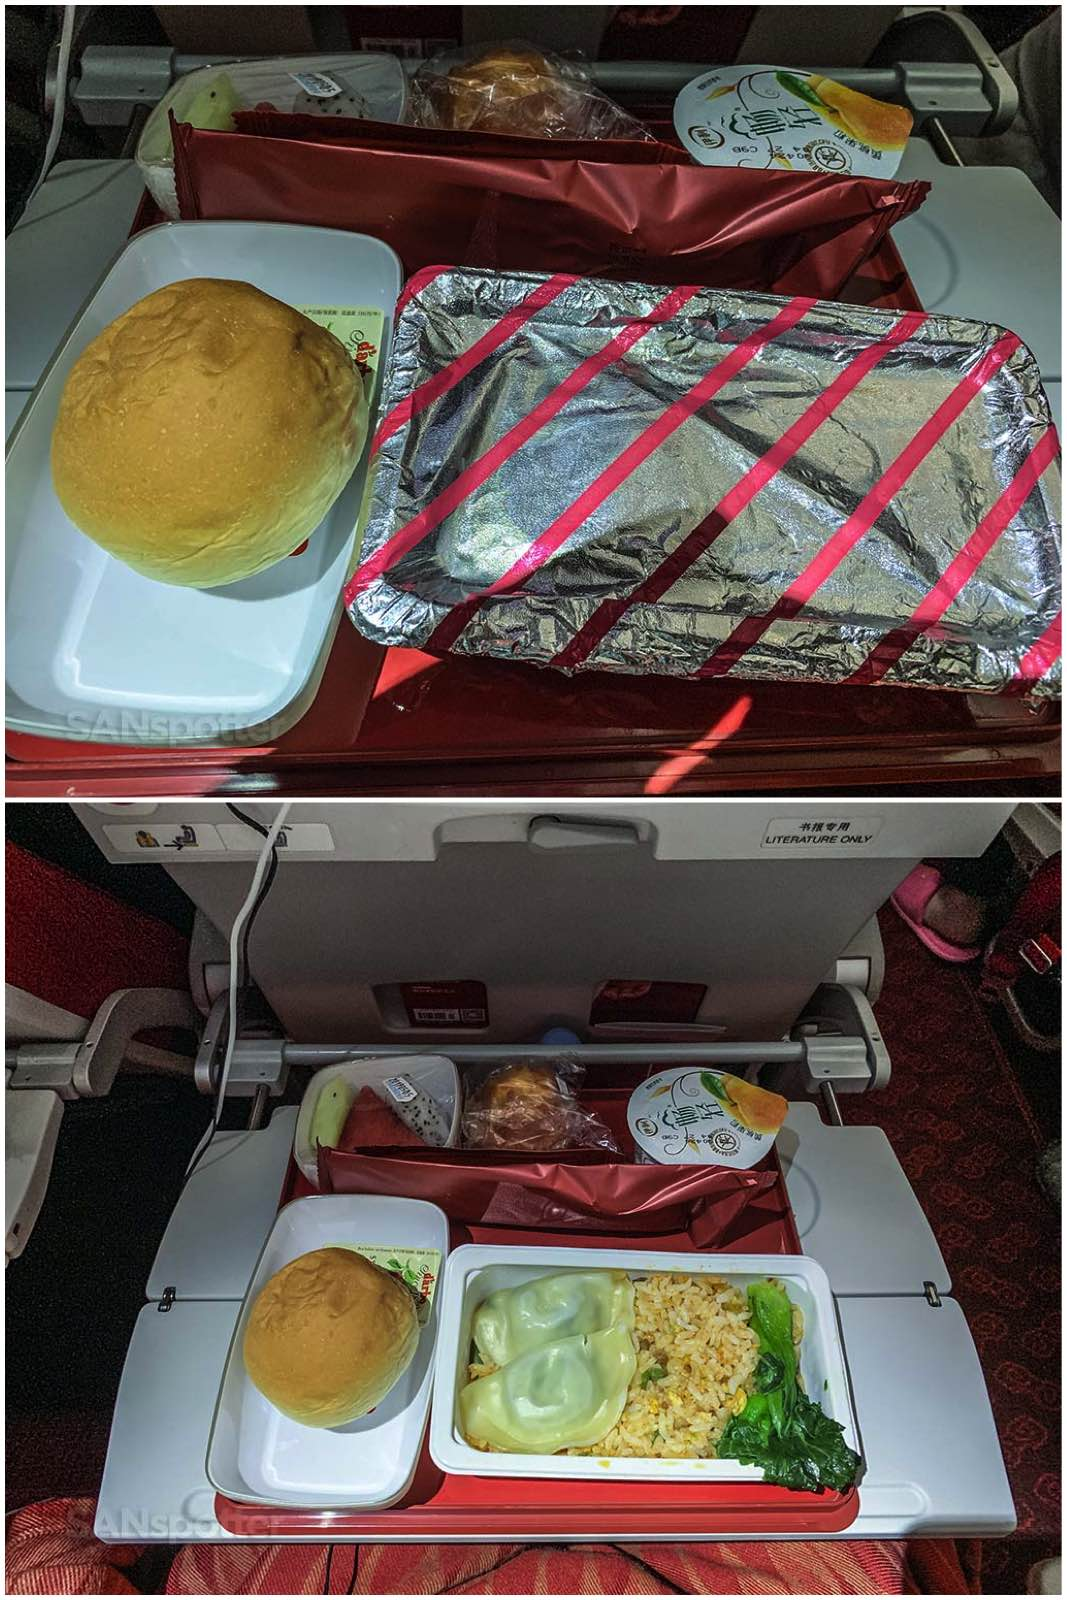 Hainan Airlines economy breakfast